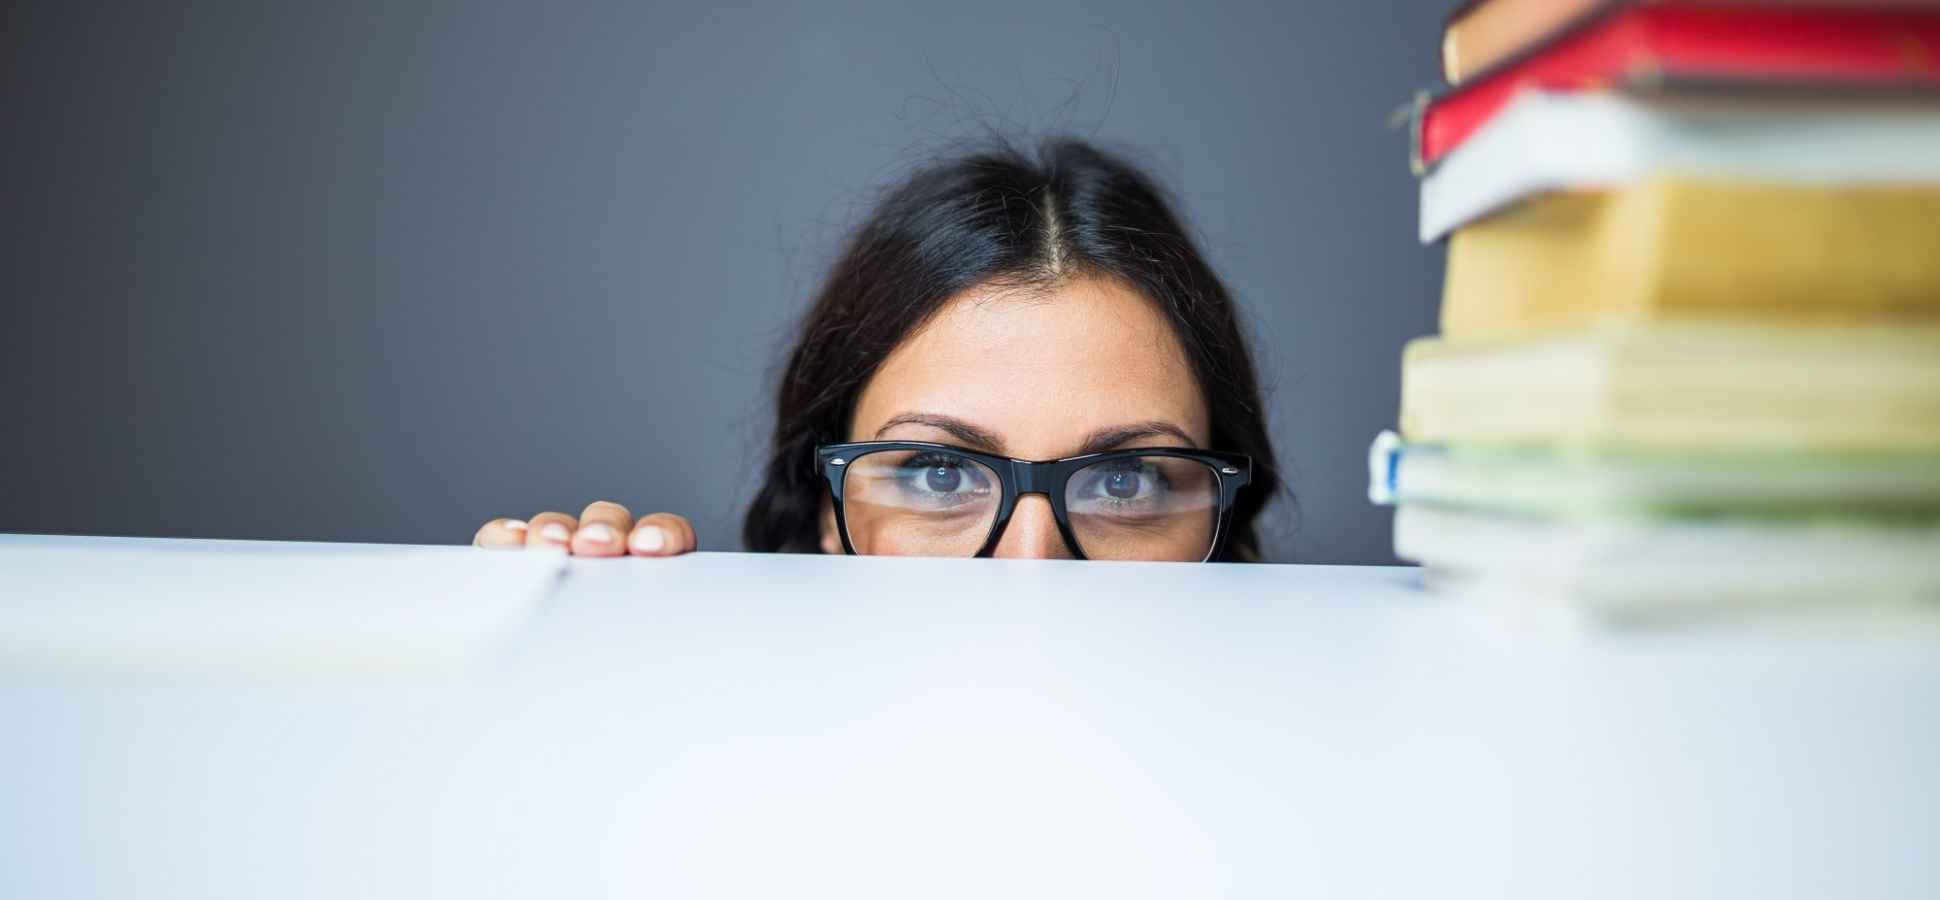 5 Survival Strategies for the Introvert in an Office of Extroverts